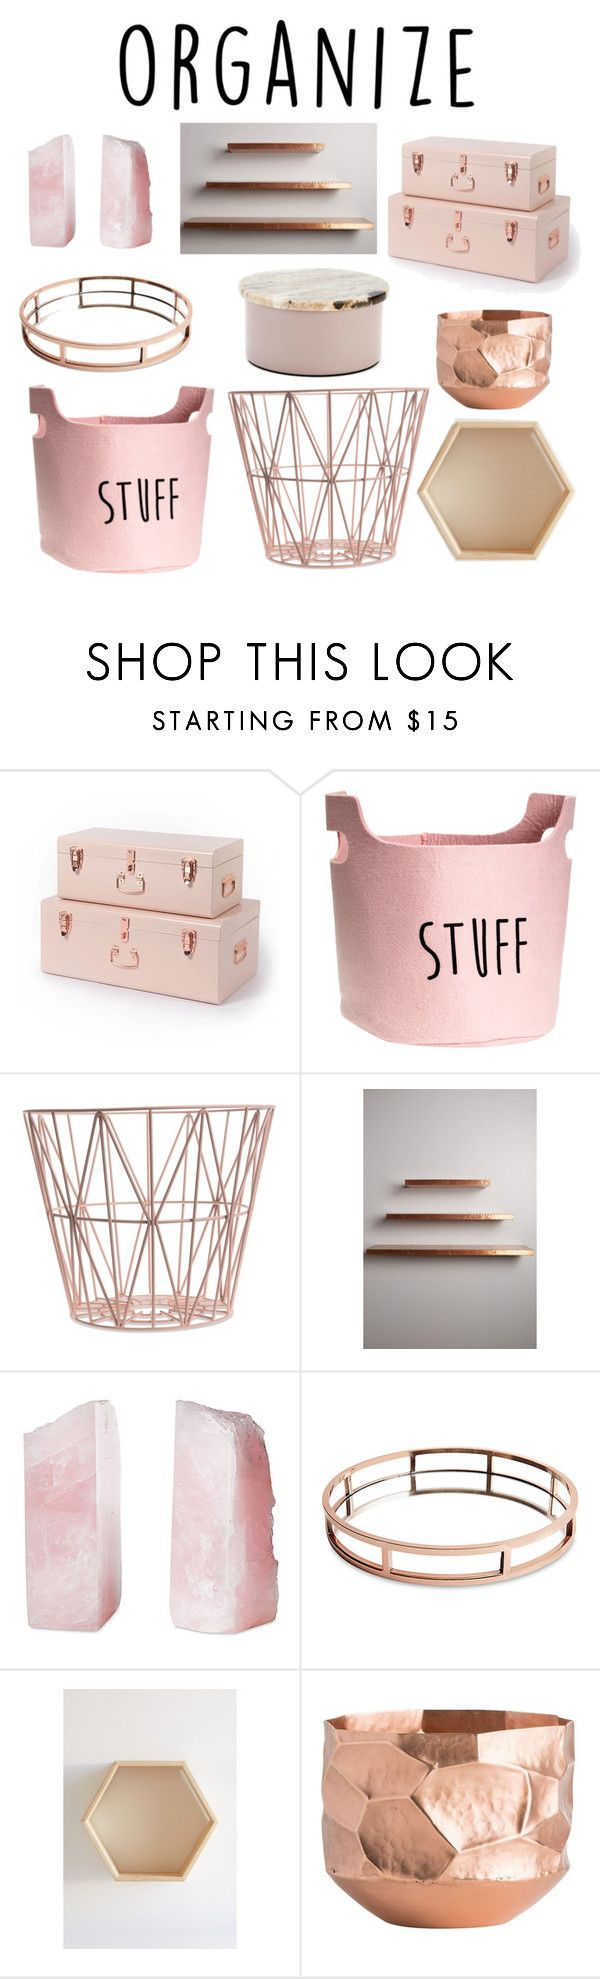 """""""Organize"""" by lilyheart4ever on Polyvore featuring interior, interiors, interior design, home, home decor, interior decorating, ferm LIVING, Anthropologie, Philmore and Urban Outfitters"""